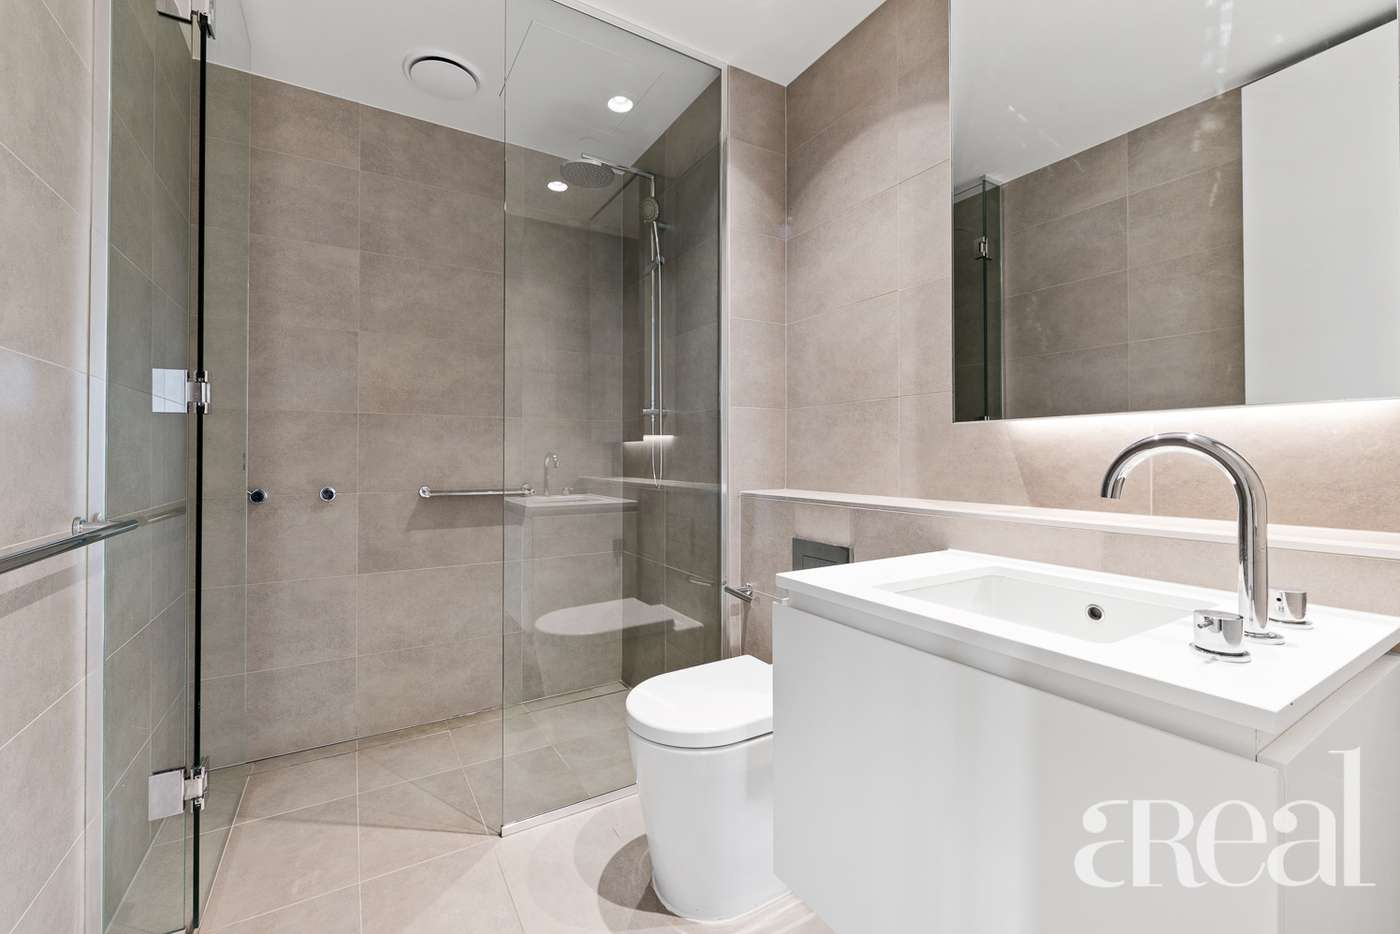 Sixth view of Homely apartment listing, 306/7 Evergreen Mews, Armadale VIC 3143